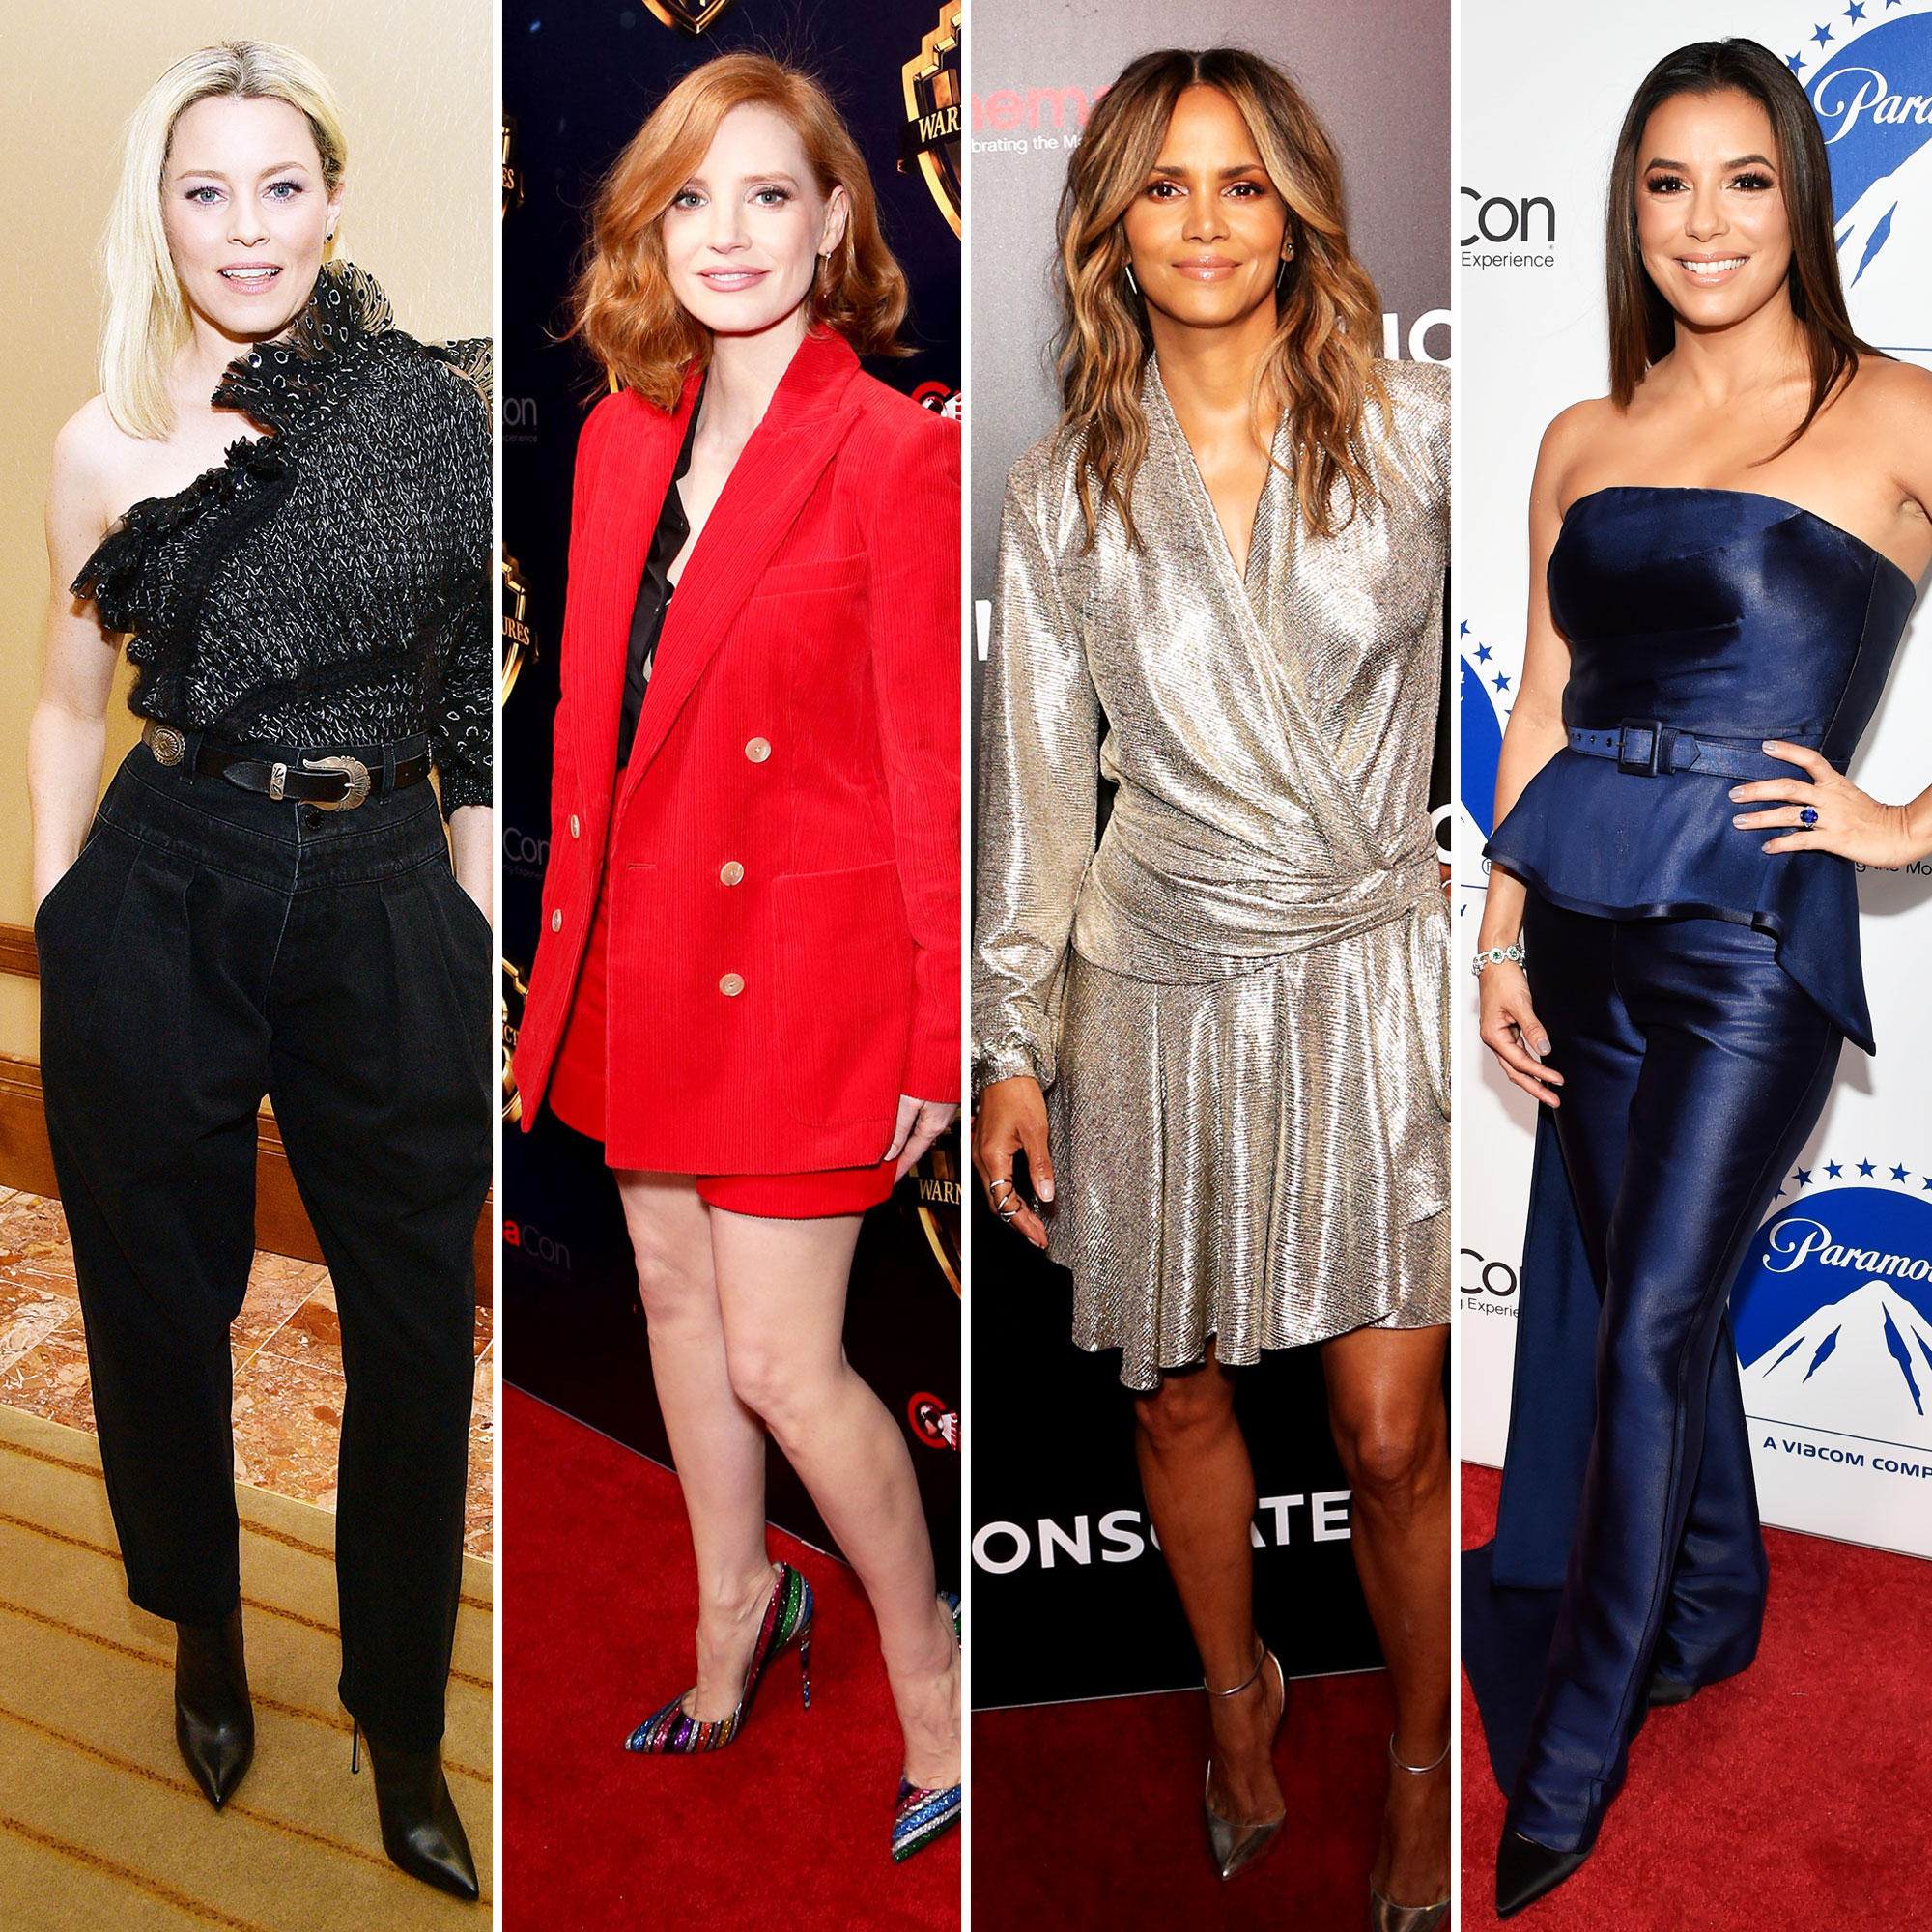 The Stars Are Bringing Their Style A-Game to CinemaCon Elizabeth Banks, Jessica Chastain, Halle Berry and Eva Longoria - Elizabeth Banks, Jessica Chastain, Halle Berry and Eva Longoria